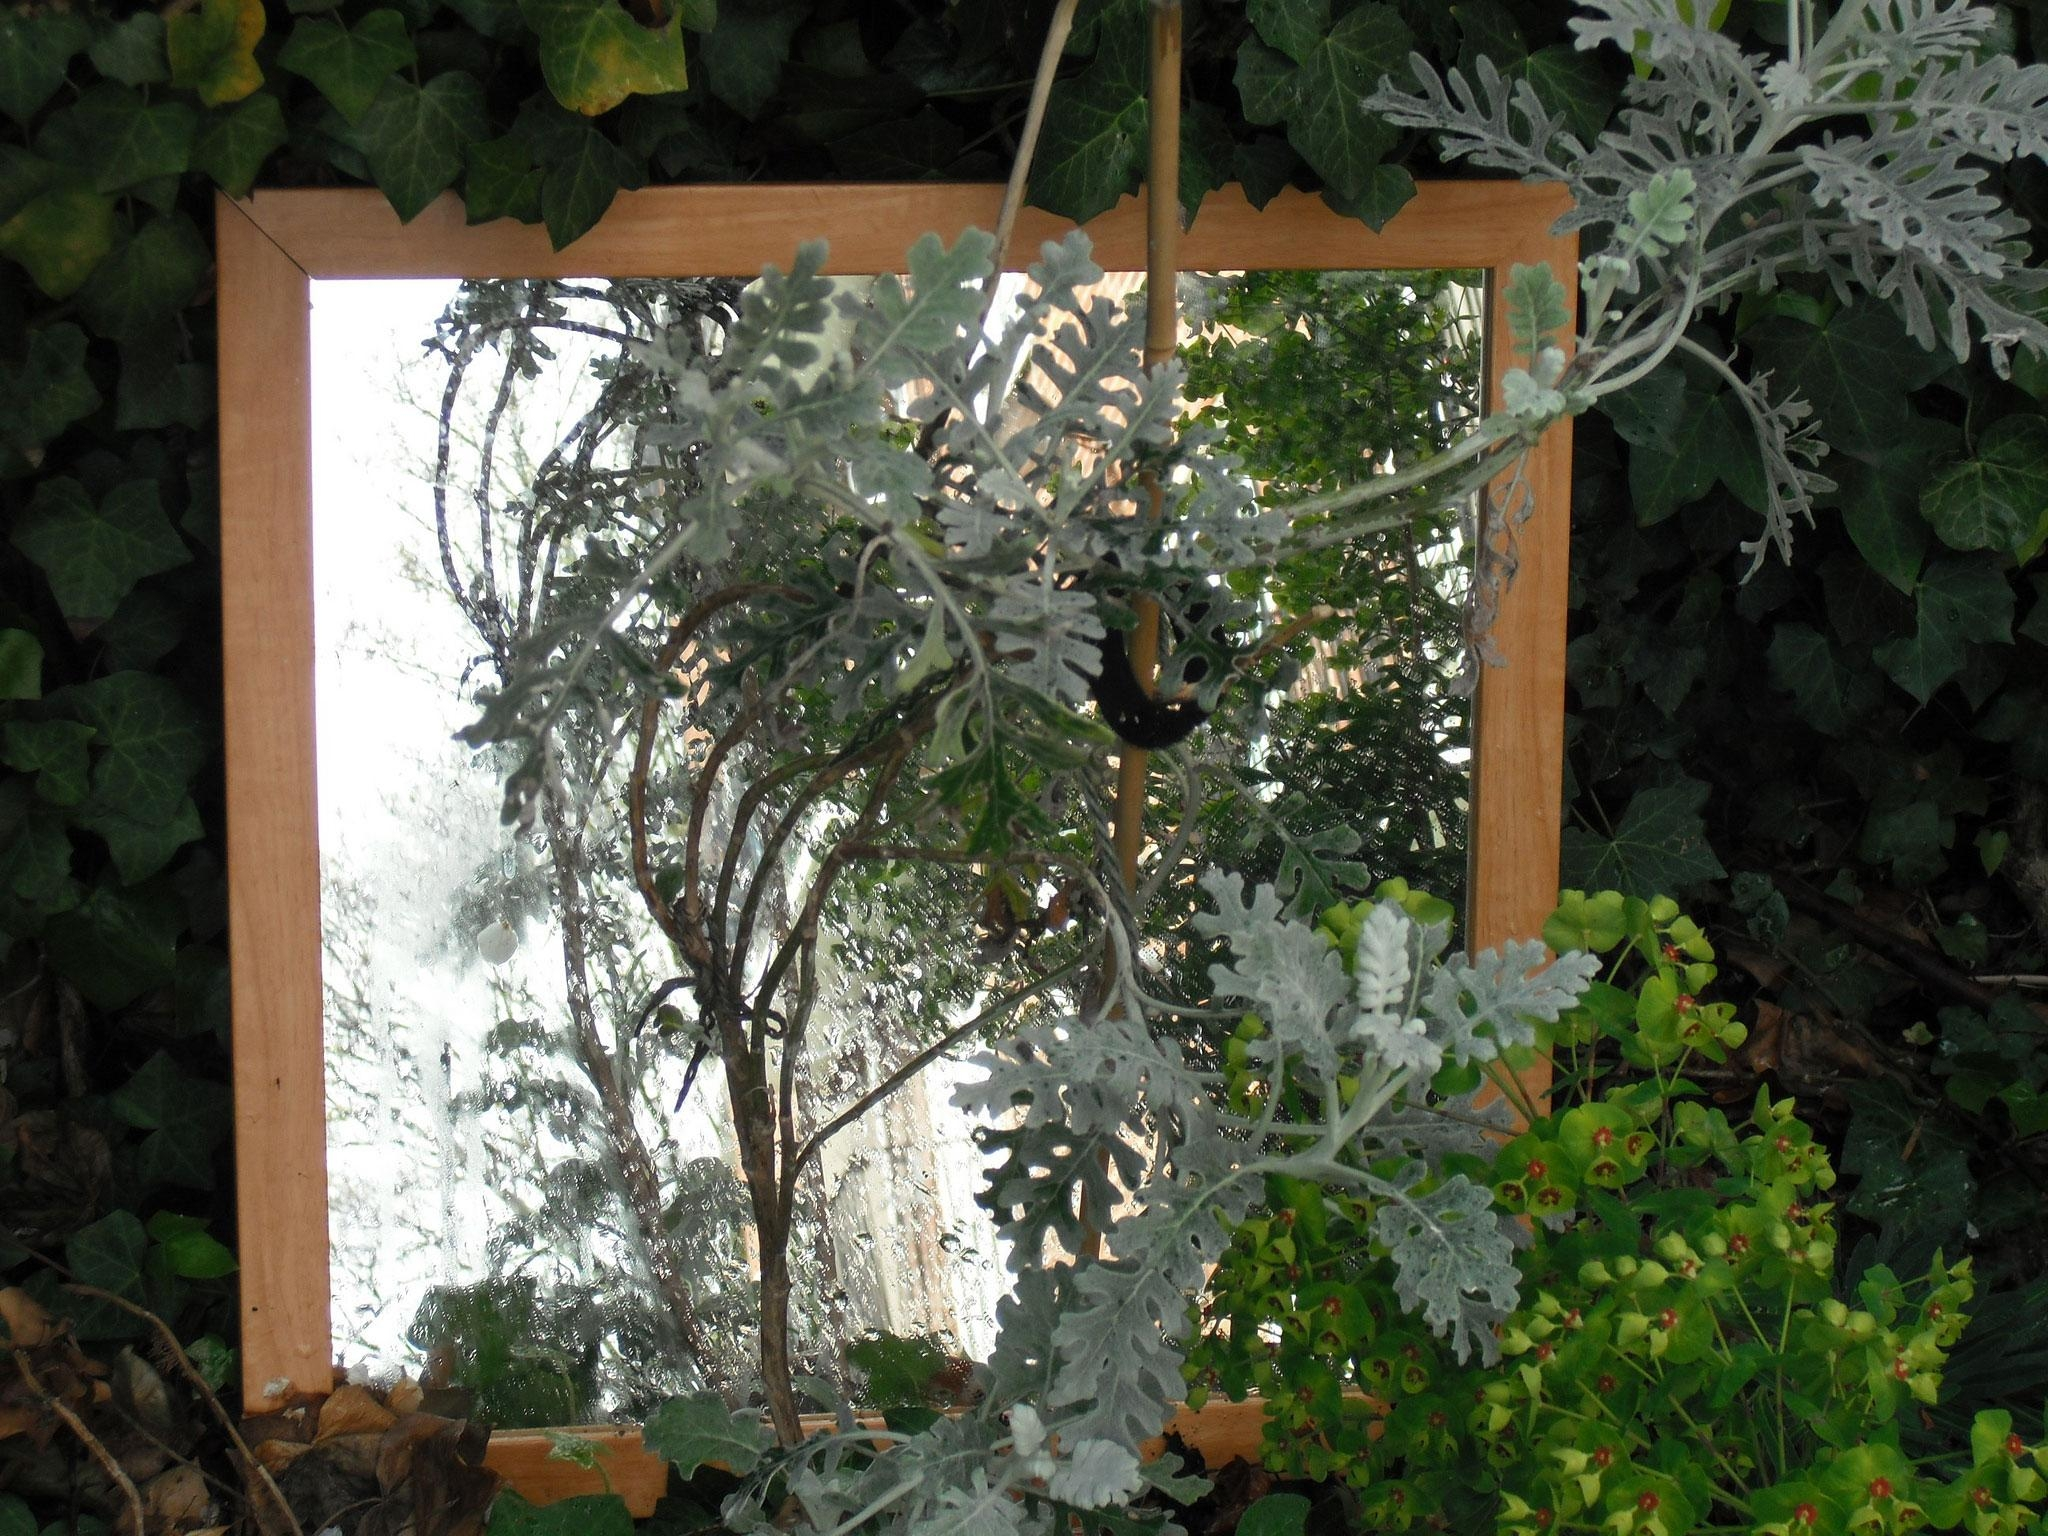 Mirrors For Garden Use – Information About Using Garden Mirrors With Regard To Large Garden Mirrors (Image 20 of 20)